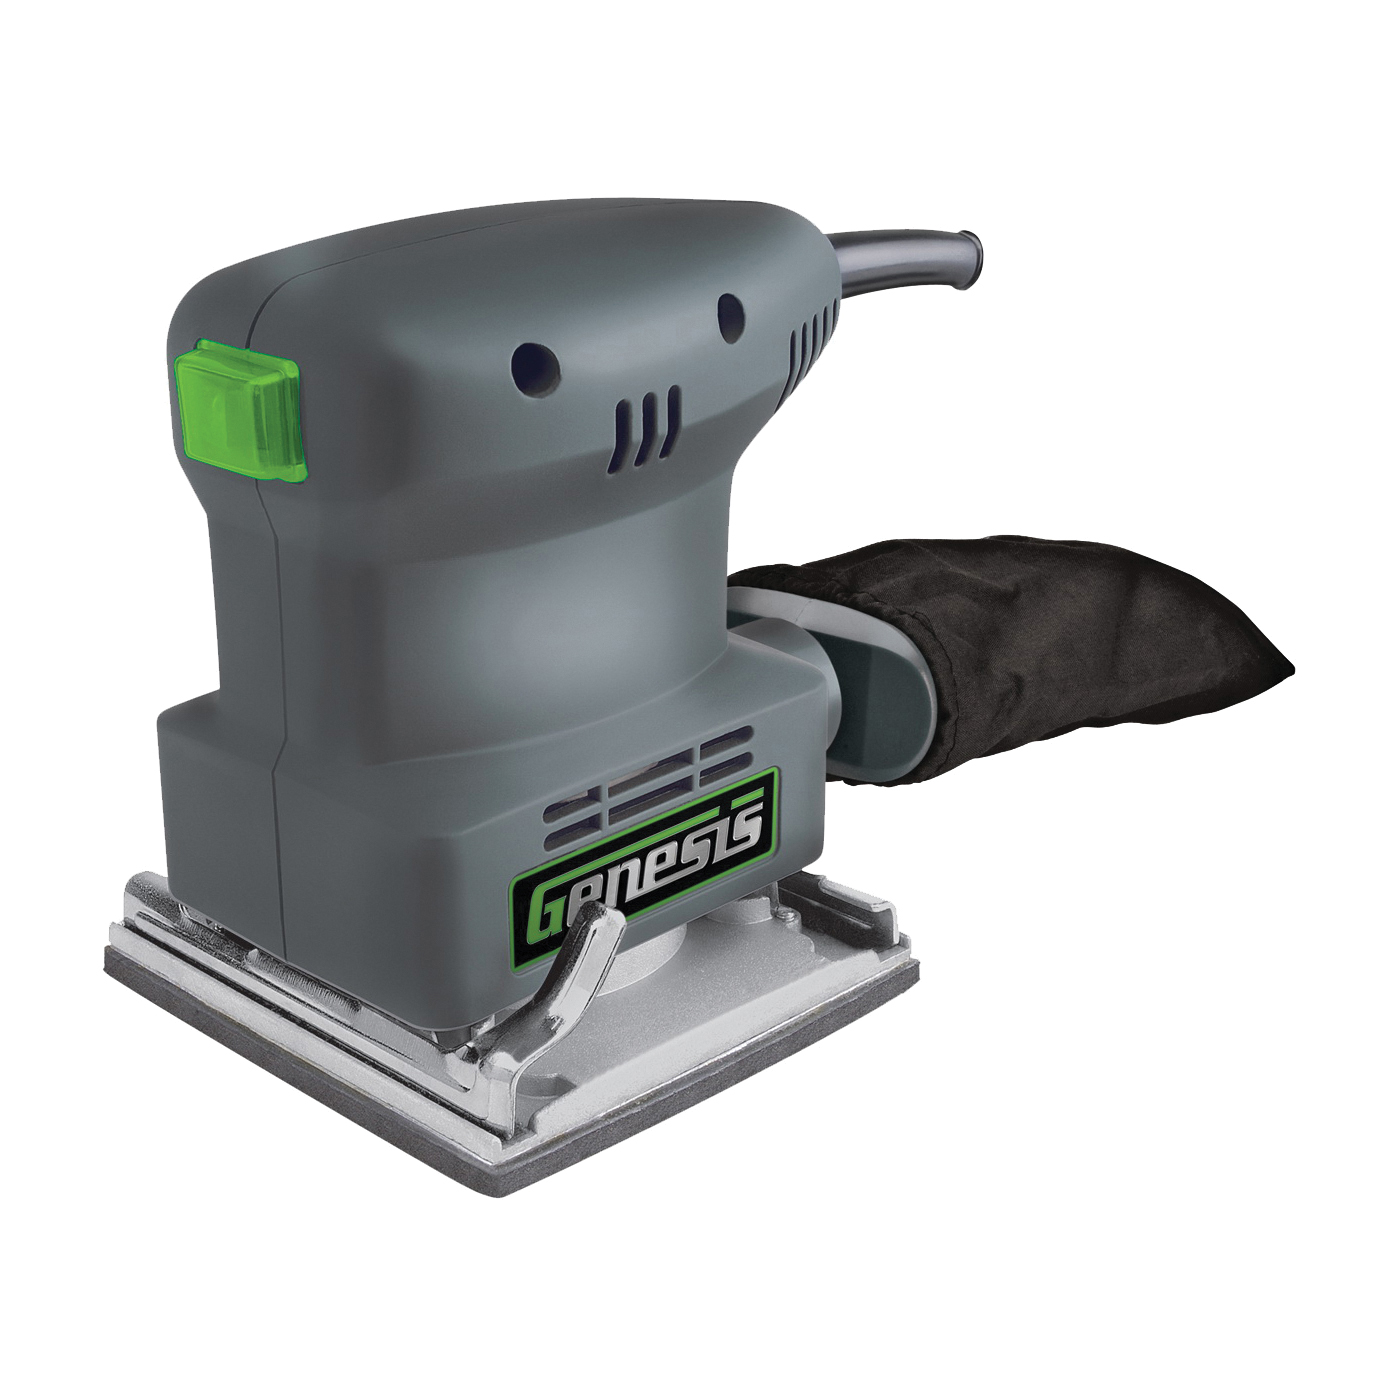 Picture of Genesis GPS2303 Palm Sander, 120 V, 1.3 A, 4-1/4 x 4 in Pad, 10000 opm No Load